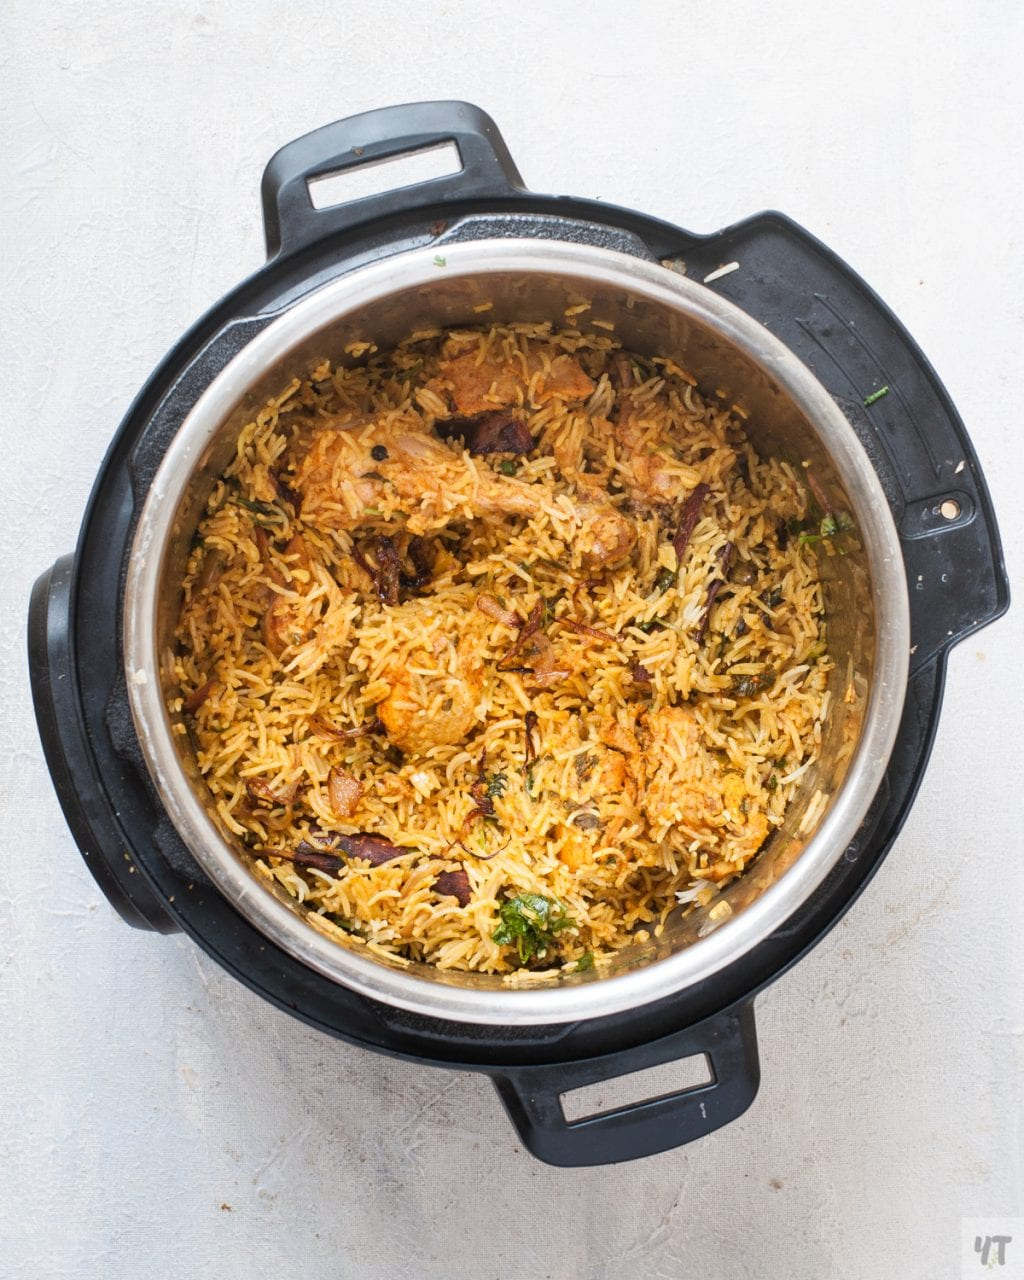 How to make Chicken Biryani in Instant Pot - One Pot ,tried and tested recipe of Hyderabadi Chicken Biryani made with Basmati Rice,Herbs and whole Spices. #biryani #instantpot #instantpotrecipe #indianinstantpotrecipe #indianrecipe #ricerecipe #chickenrecipe #chicken #indianchickenrecipe